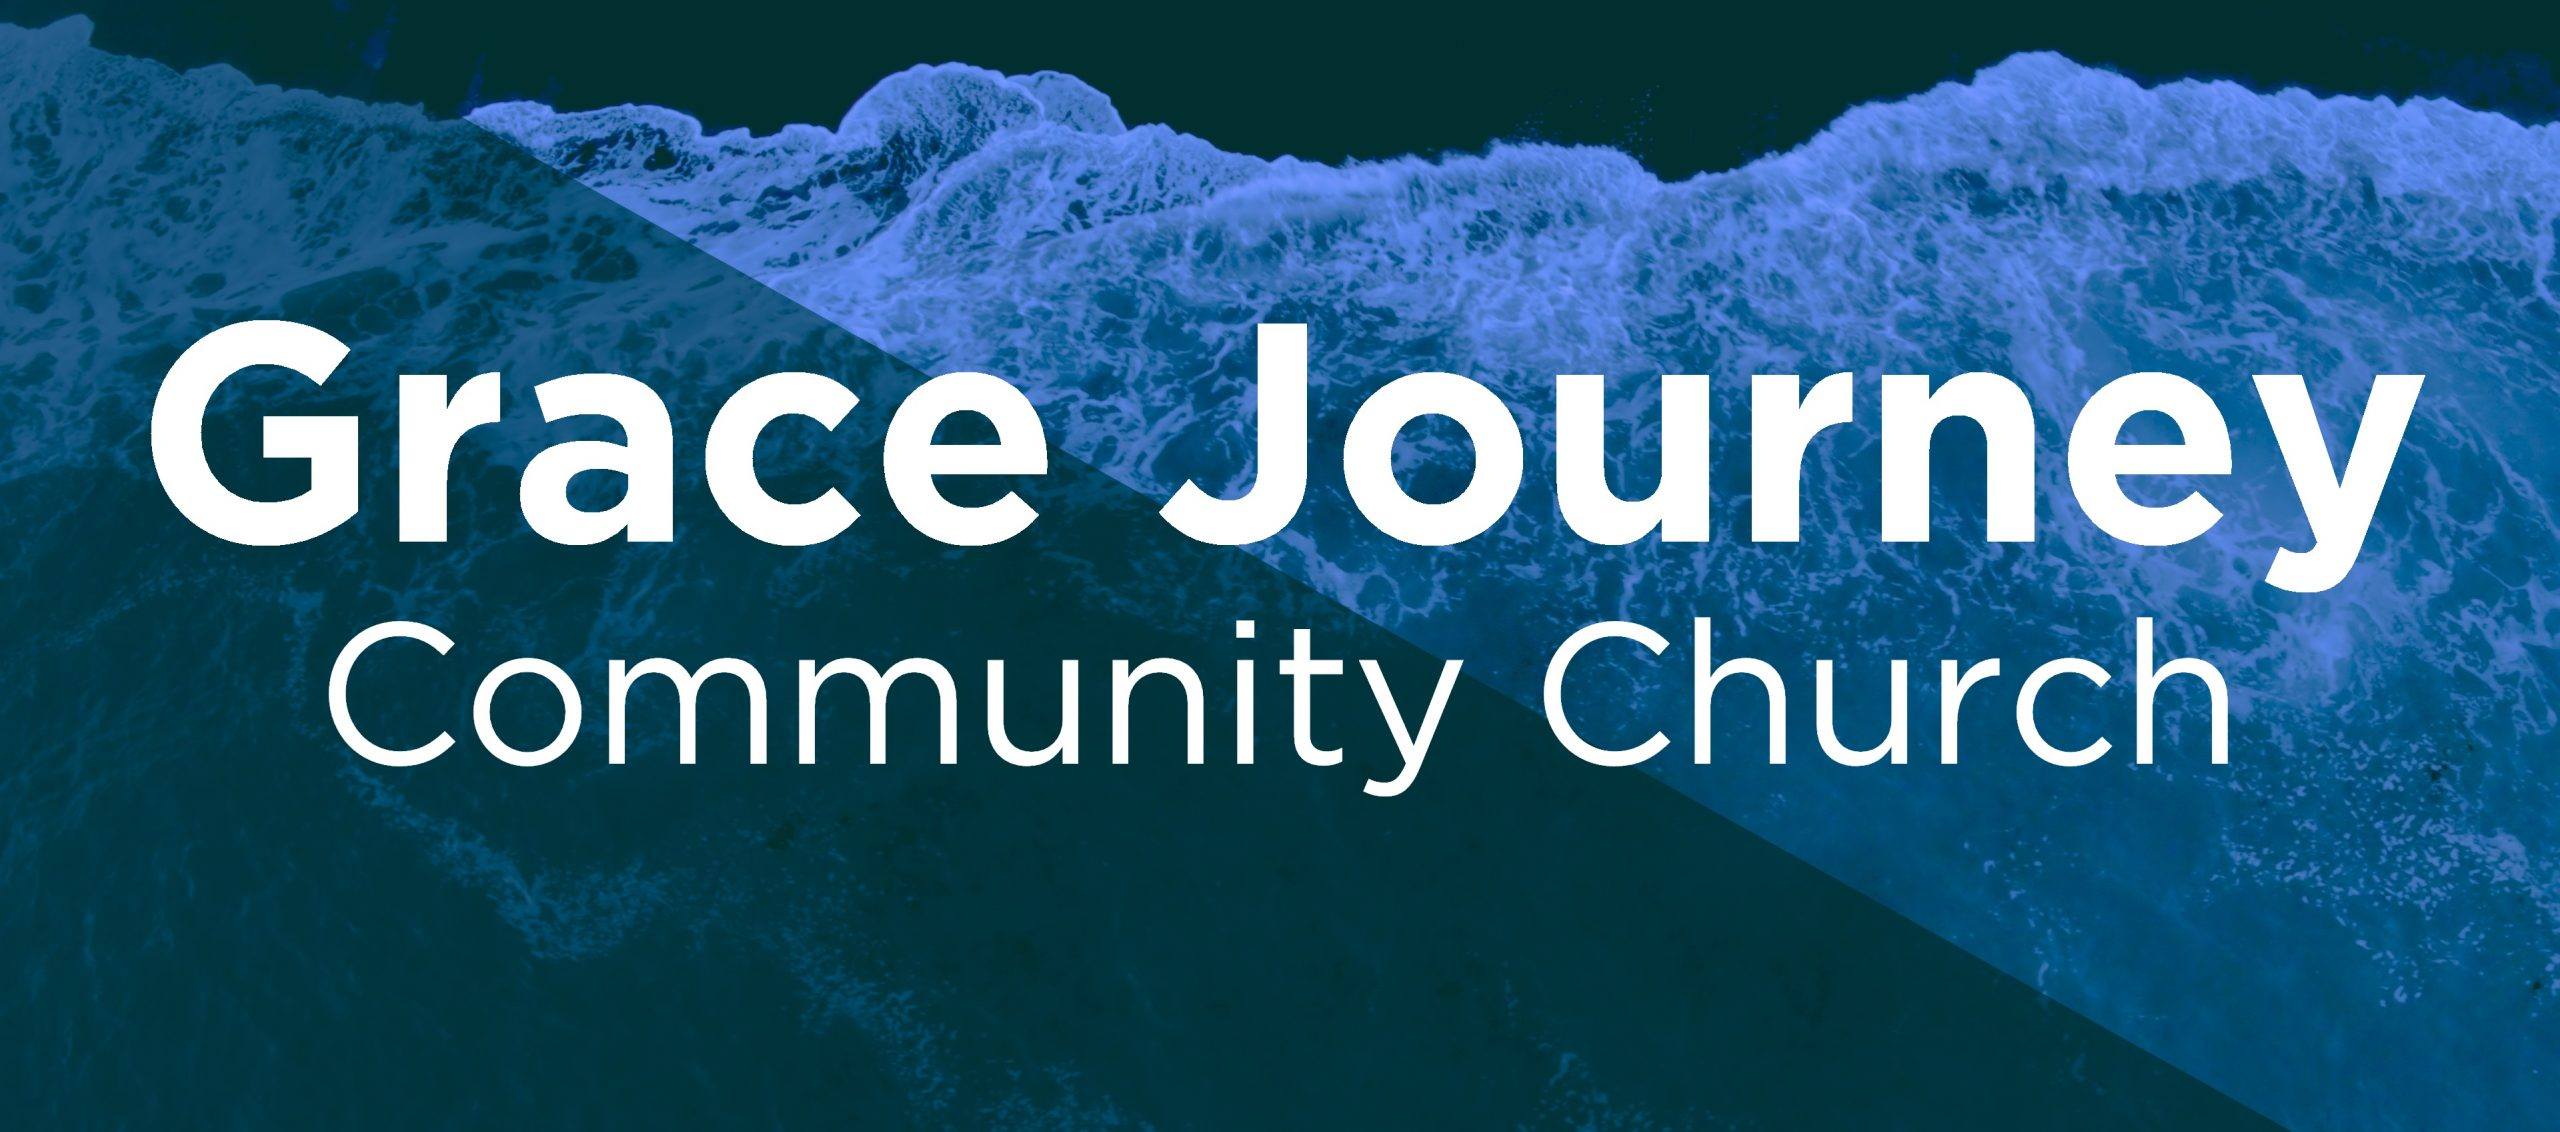 Grace Journey Community Church